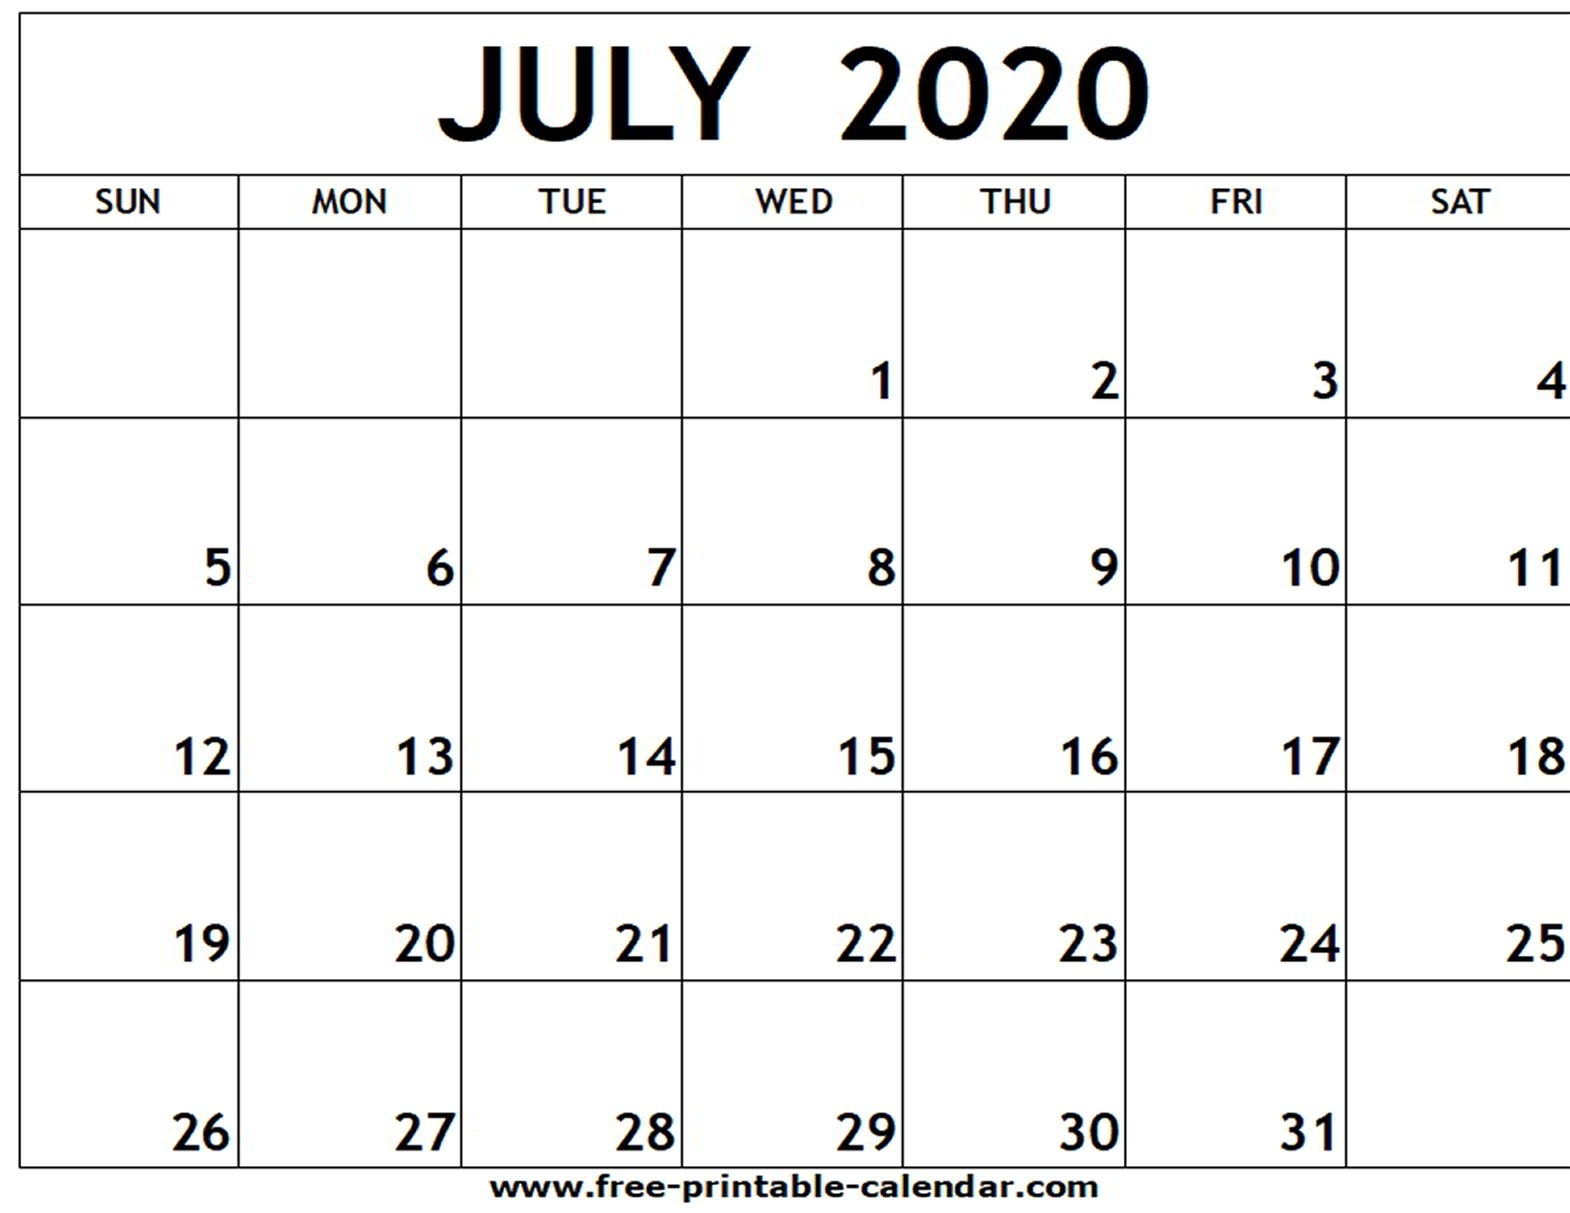 July 2020 Printable Calendar - Free-Printable-Calendar-Printable Monthly Template July 2020